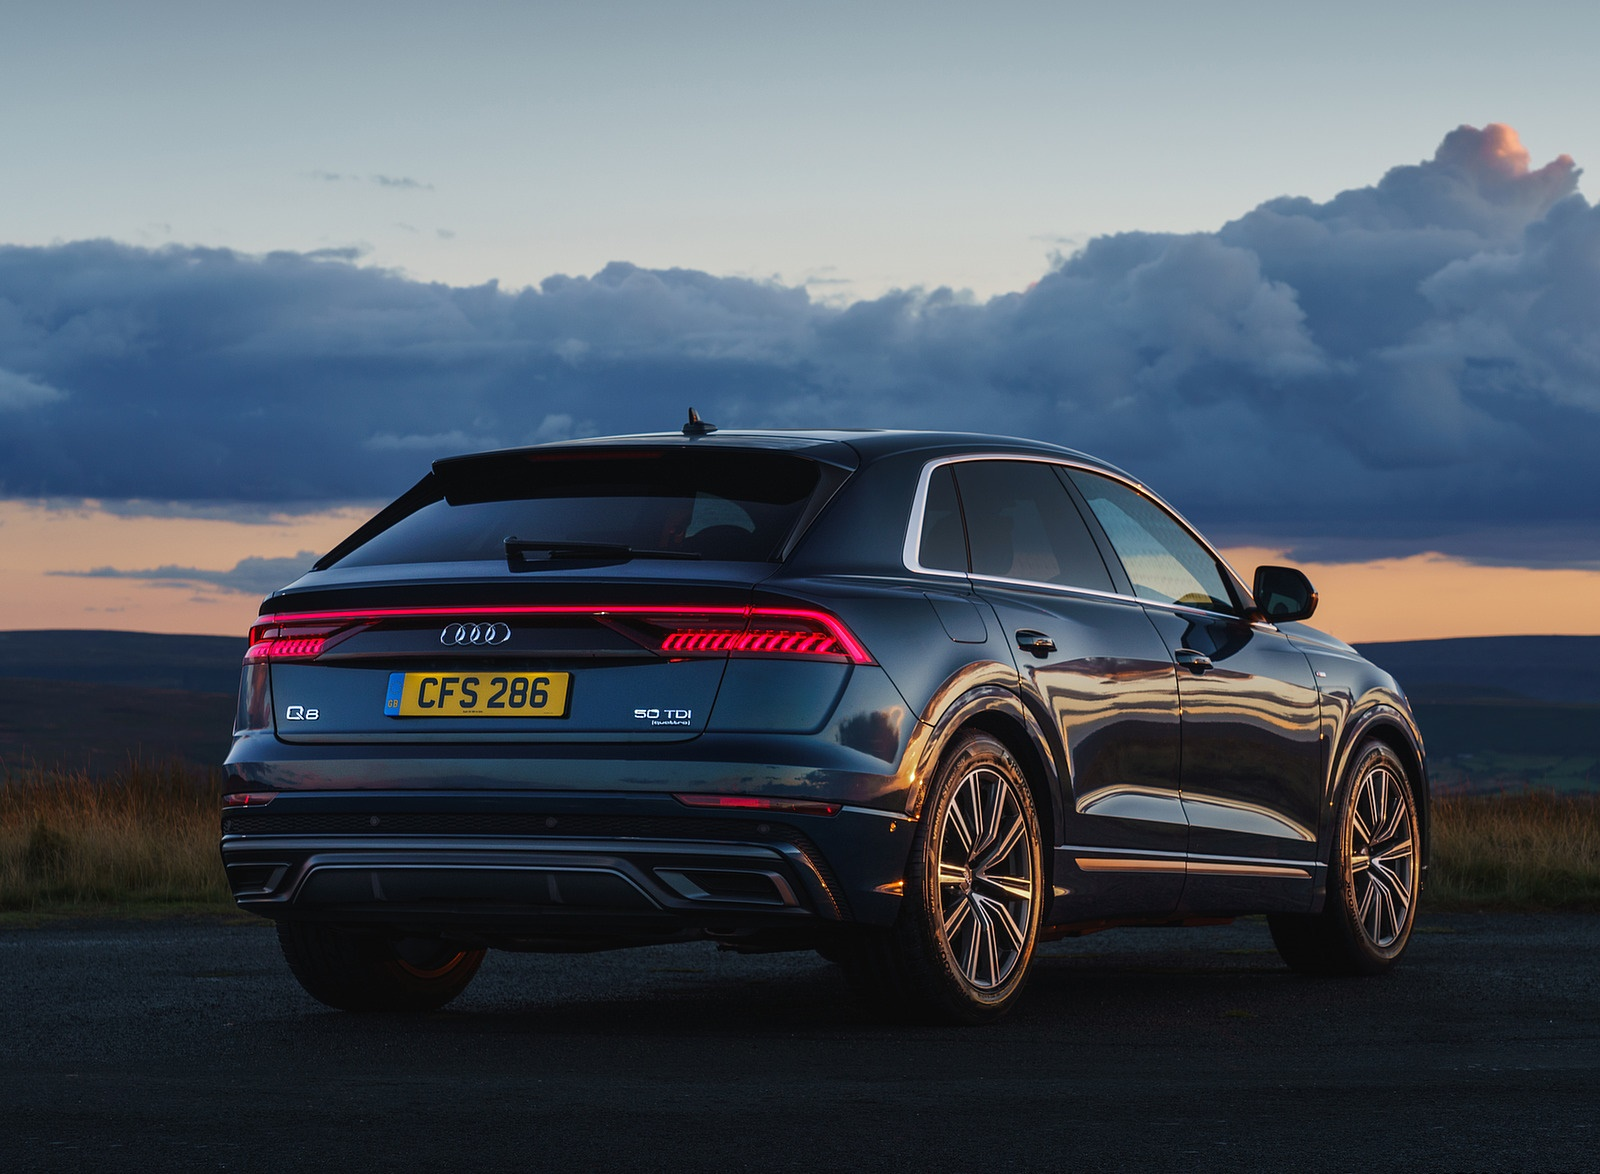 2019 Audi Q8 S Line 50 TDI Quattro (UK-Spec) Rear Three-Quarter Wallpaper (15)